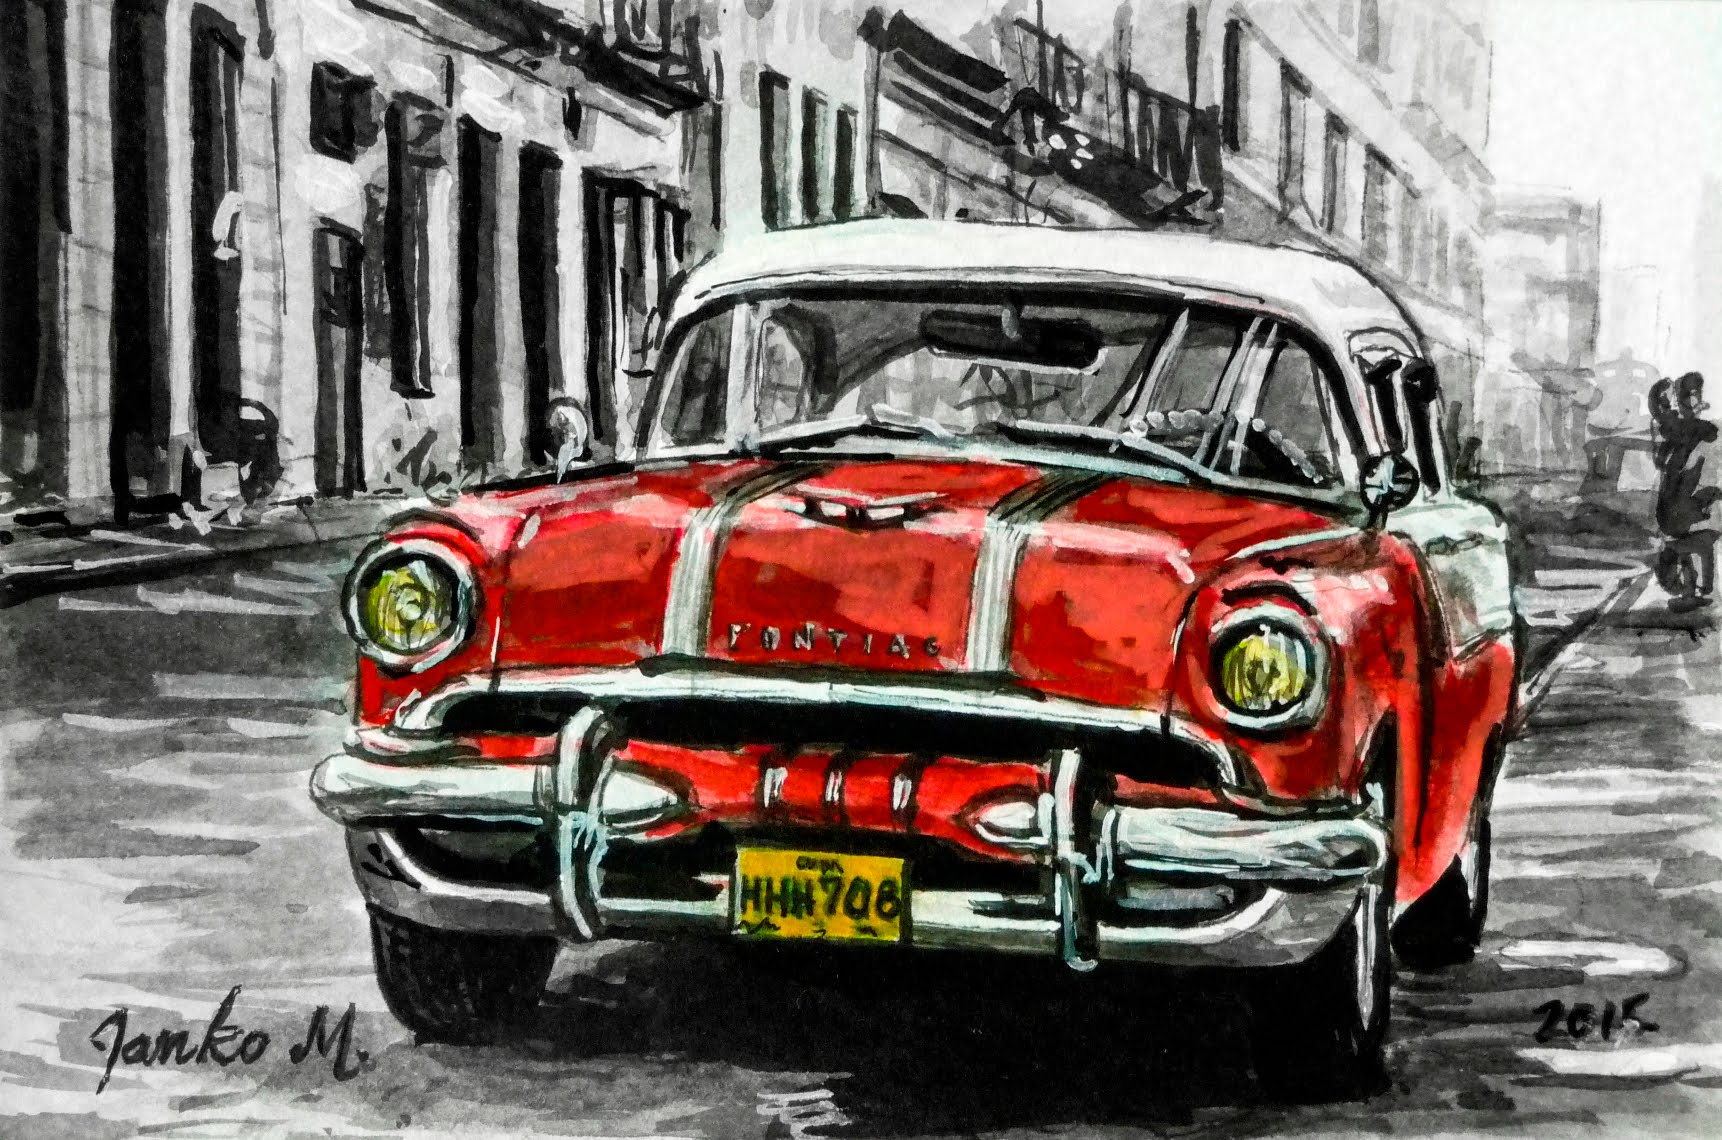 Old car- Cuba drawing with pen and ink - Time lapse - YouTube